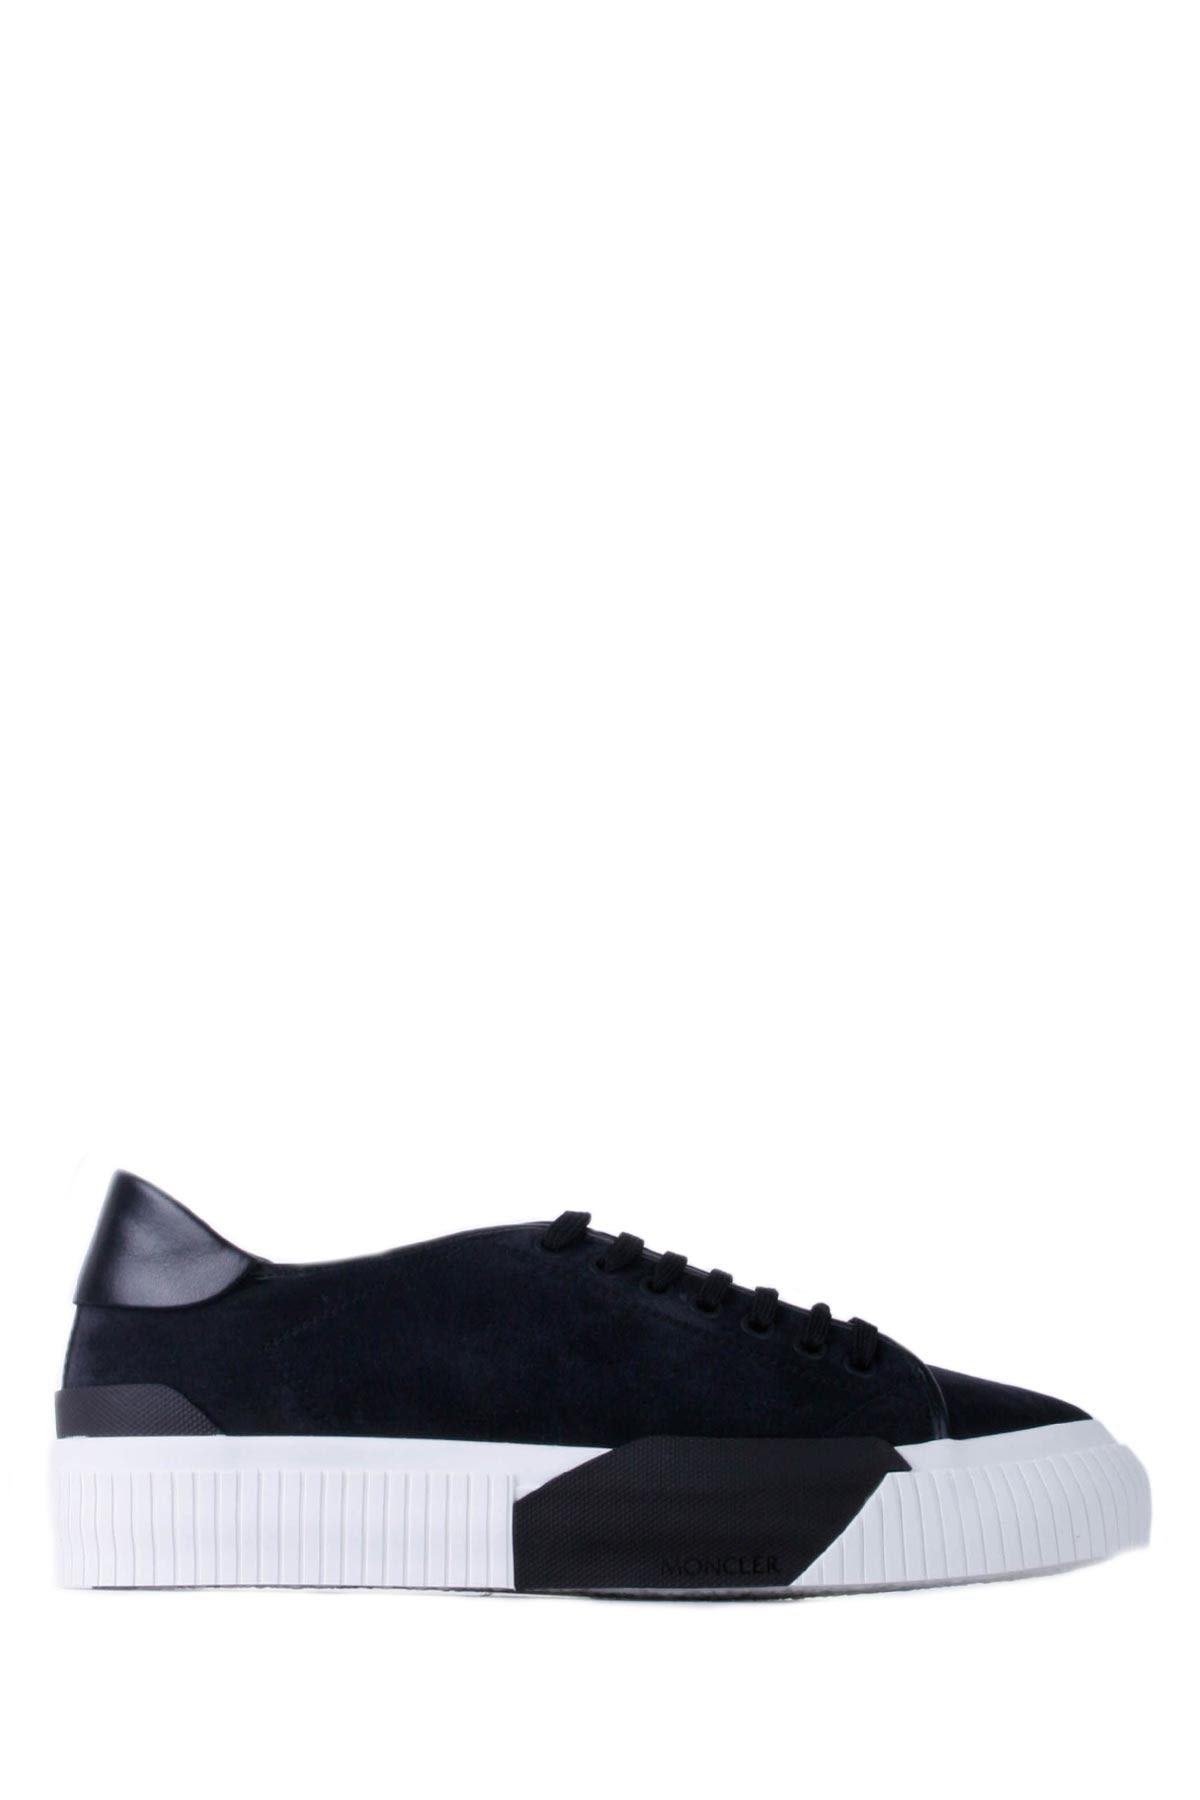 Moncler Black And White Man Conrad Sneakers